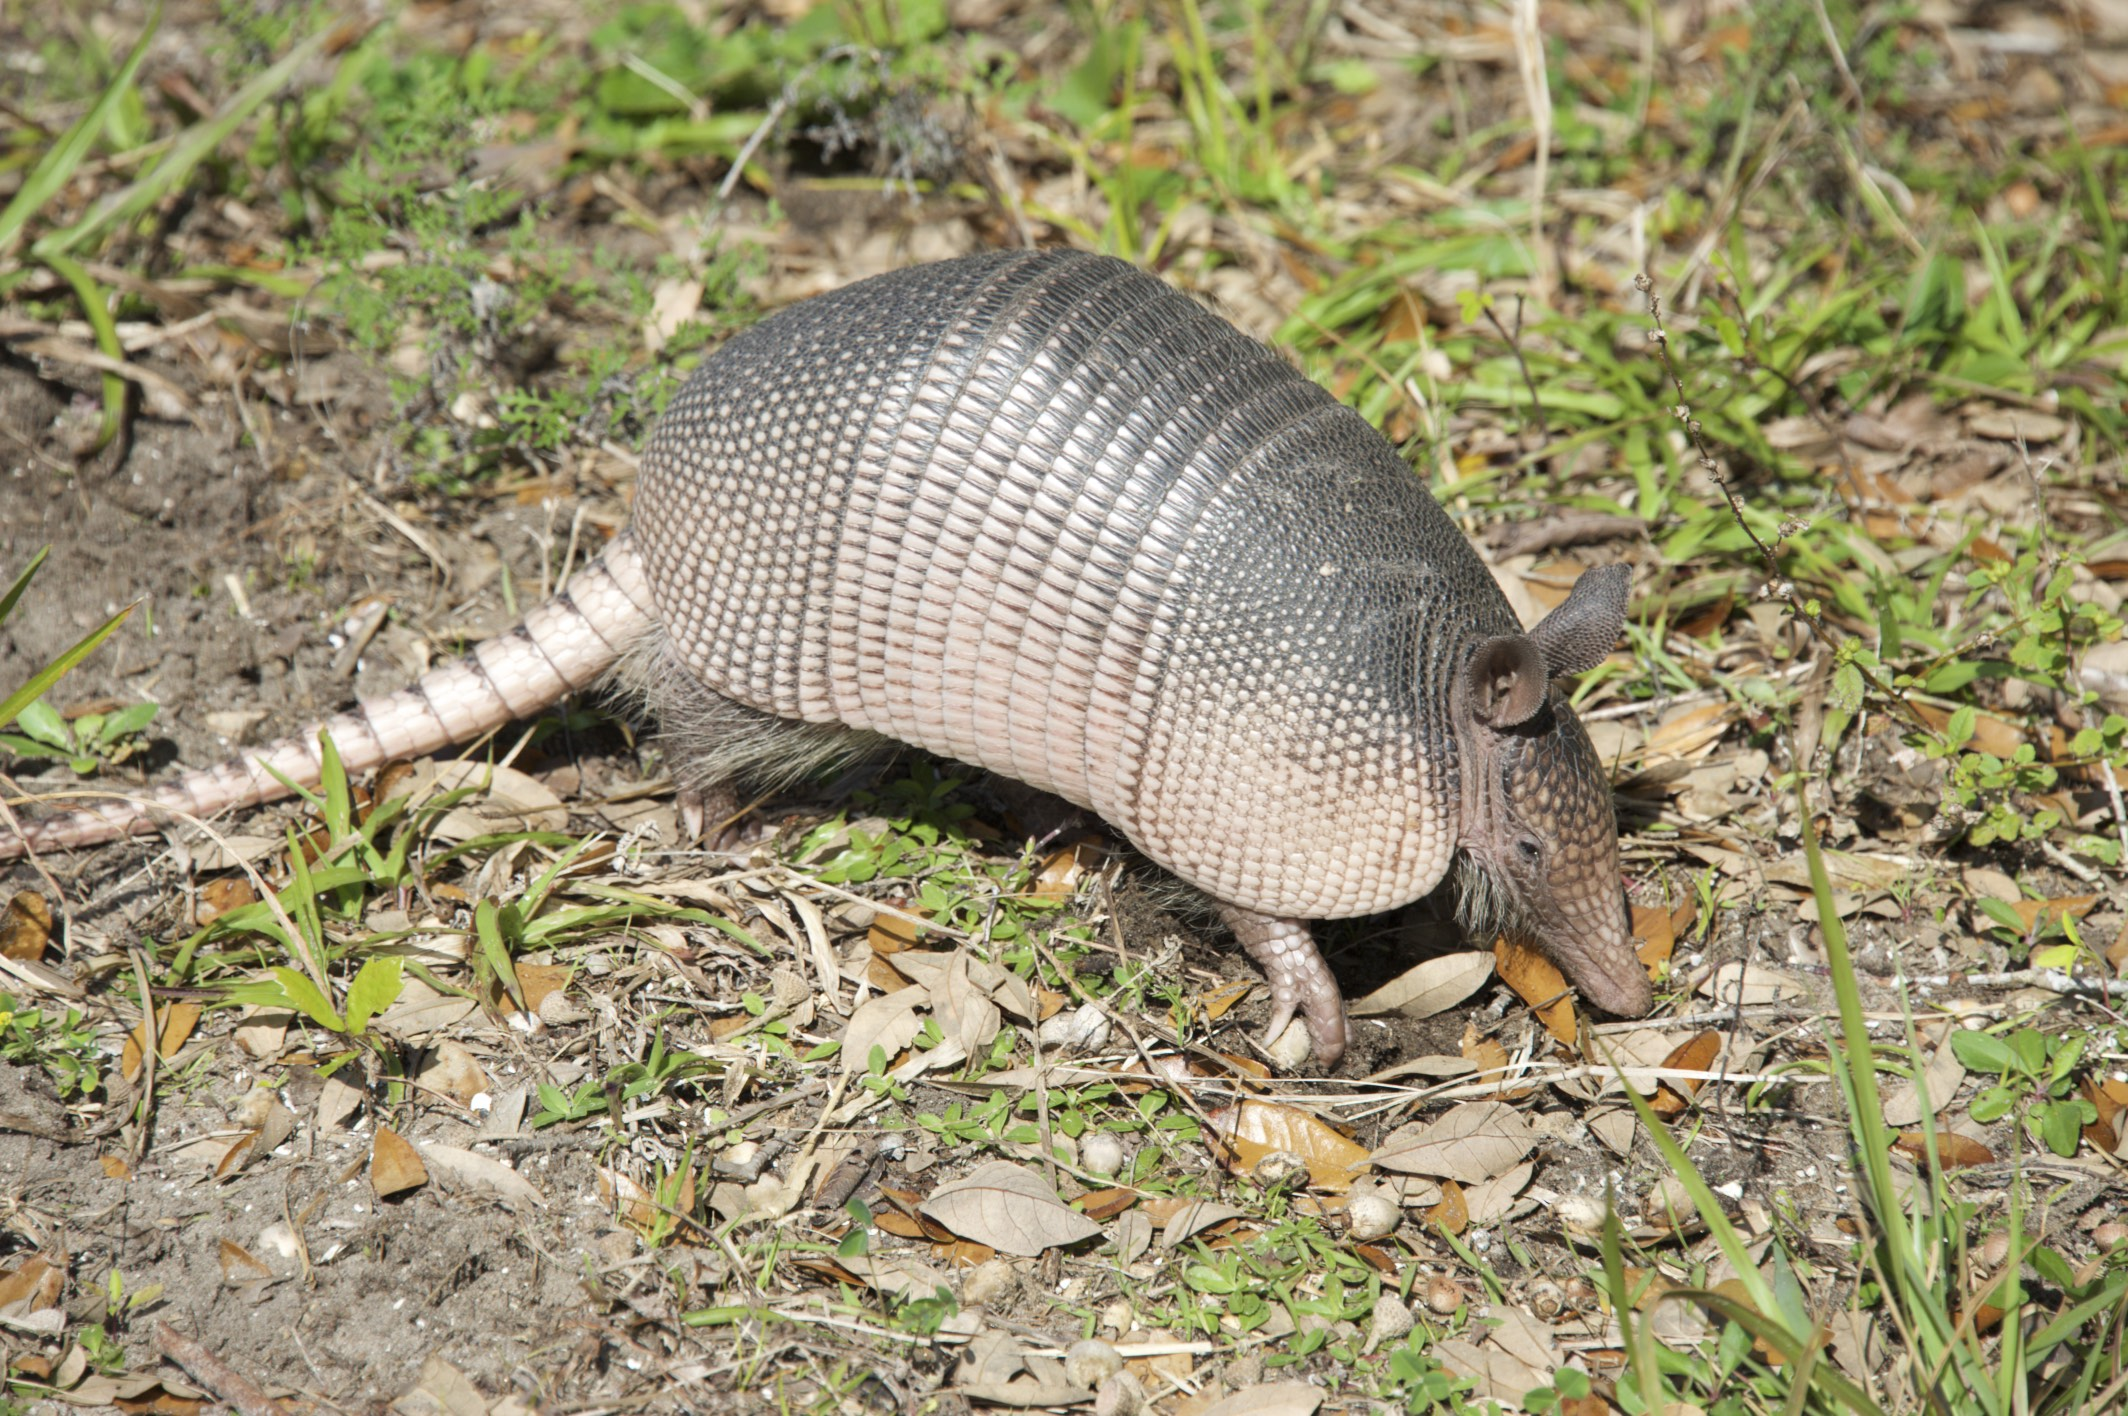 An armadillo graced us with his presence